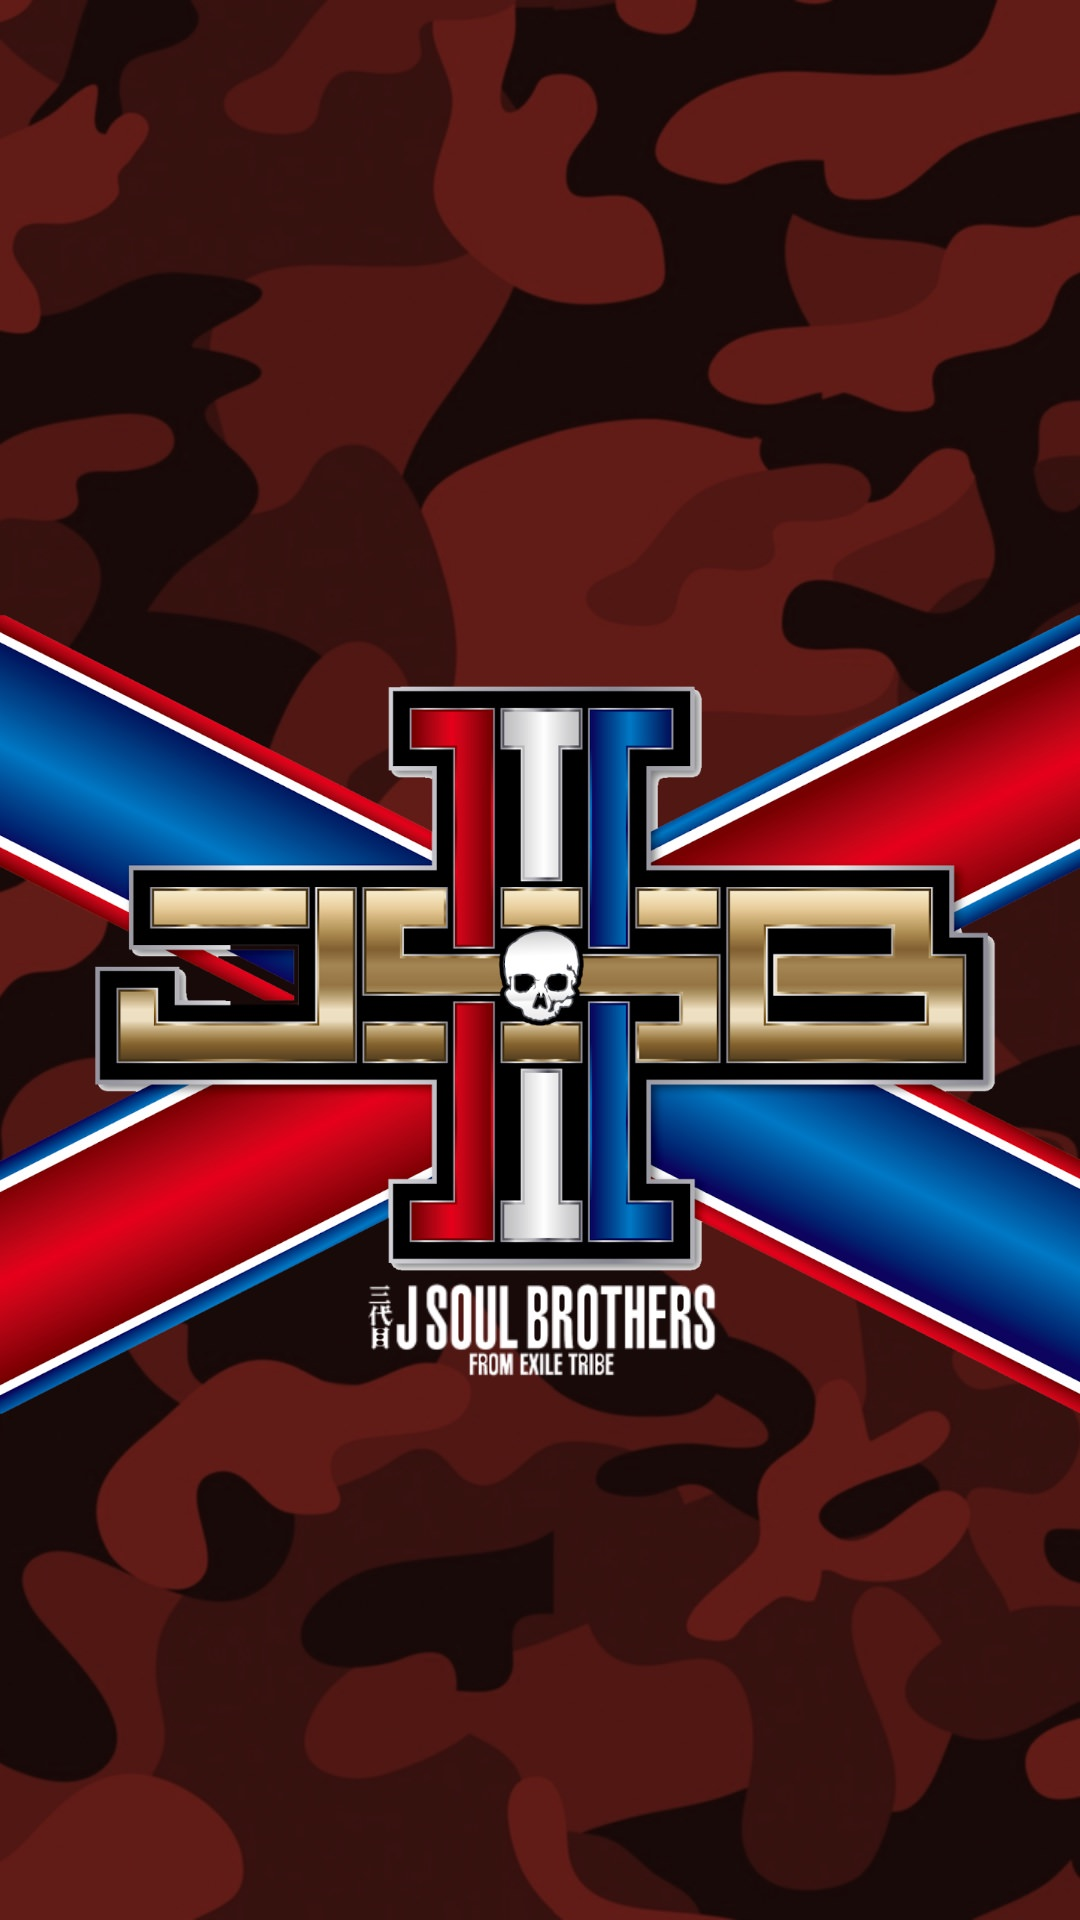 3jsb i38 - 三代目 J SOUL BROTHERSの高画質スマホ壁紙40枚 [iPhone&Androidに対応]